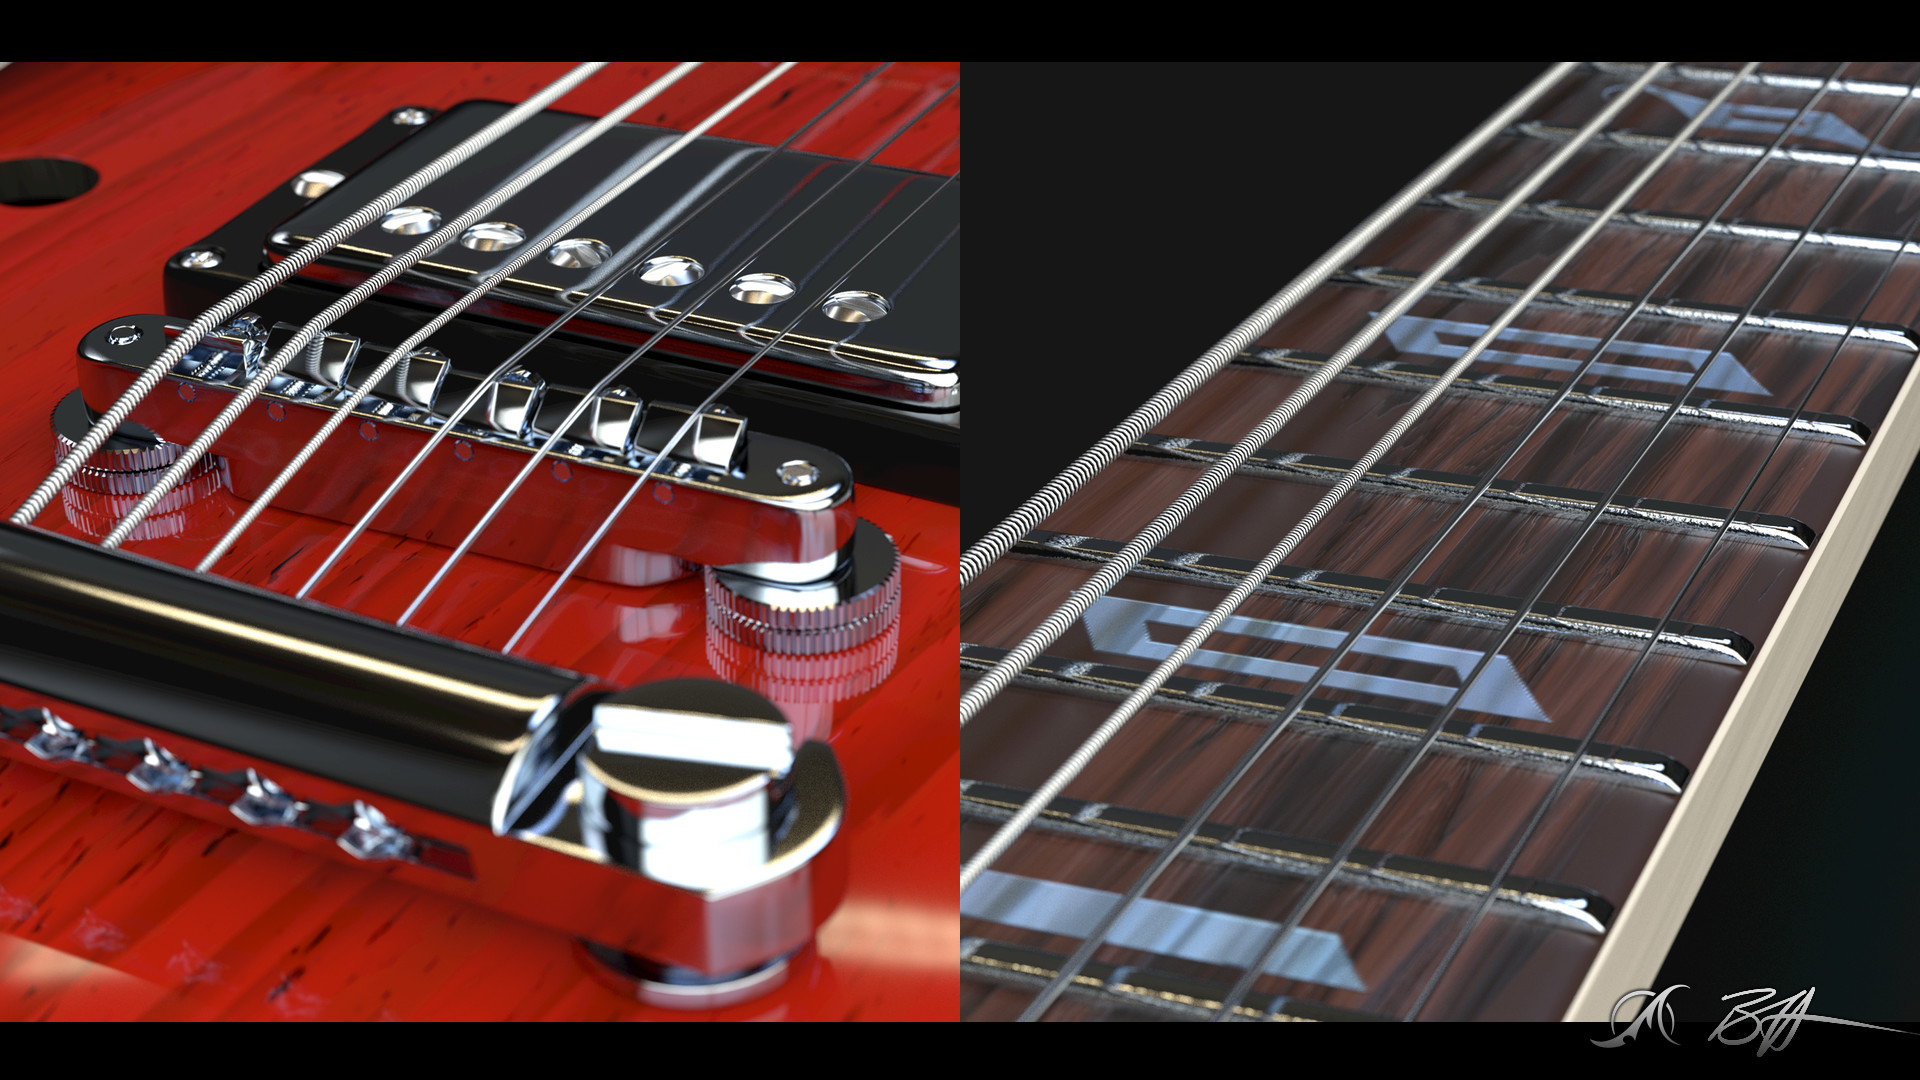 Bridge and fret board design closeups